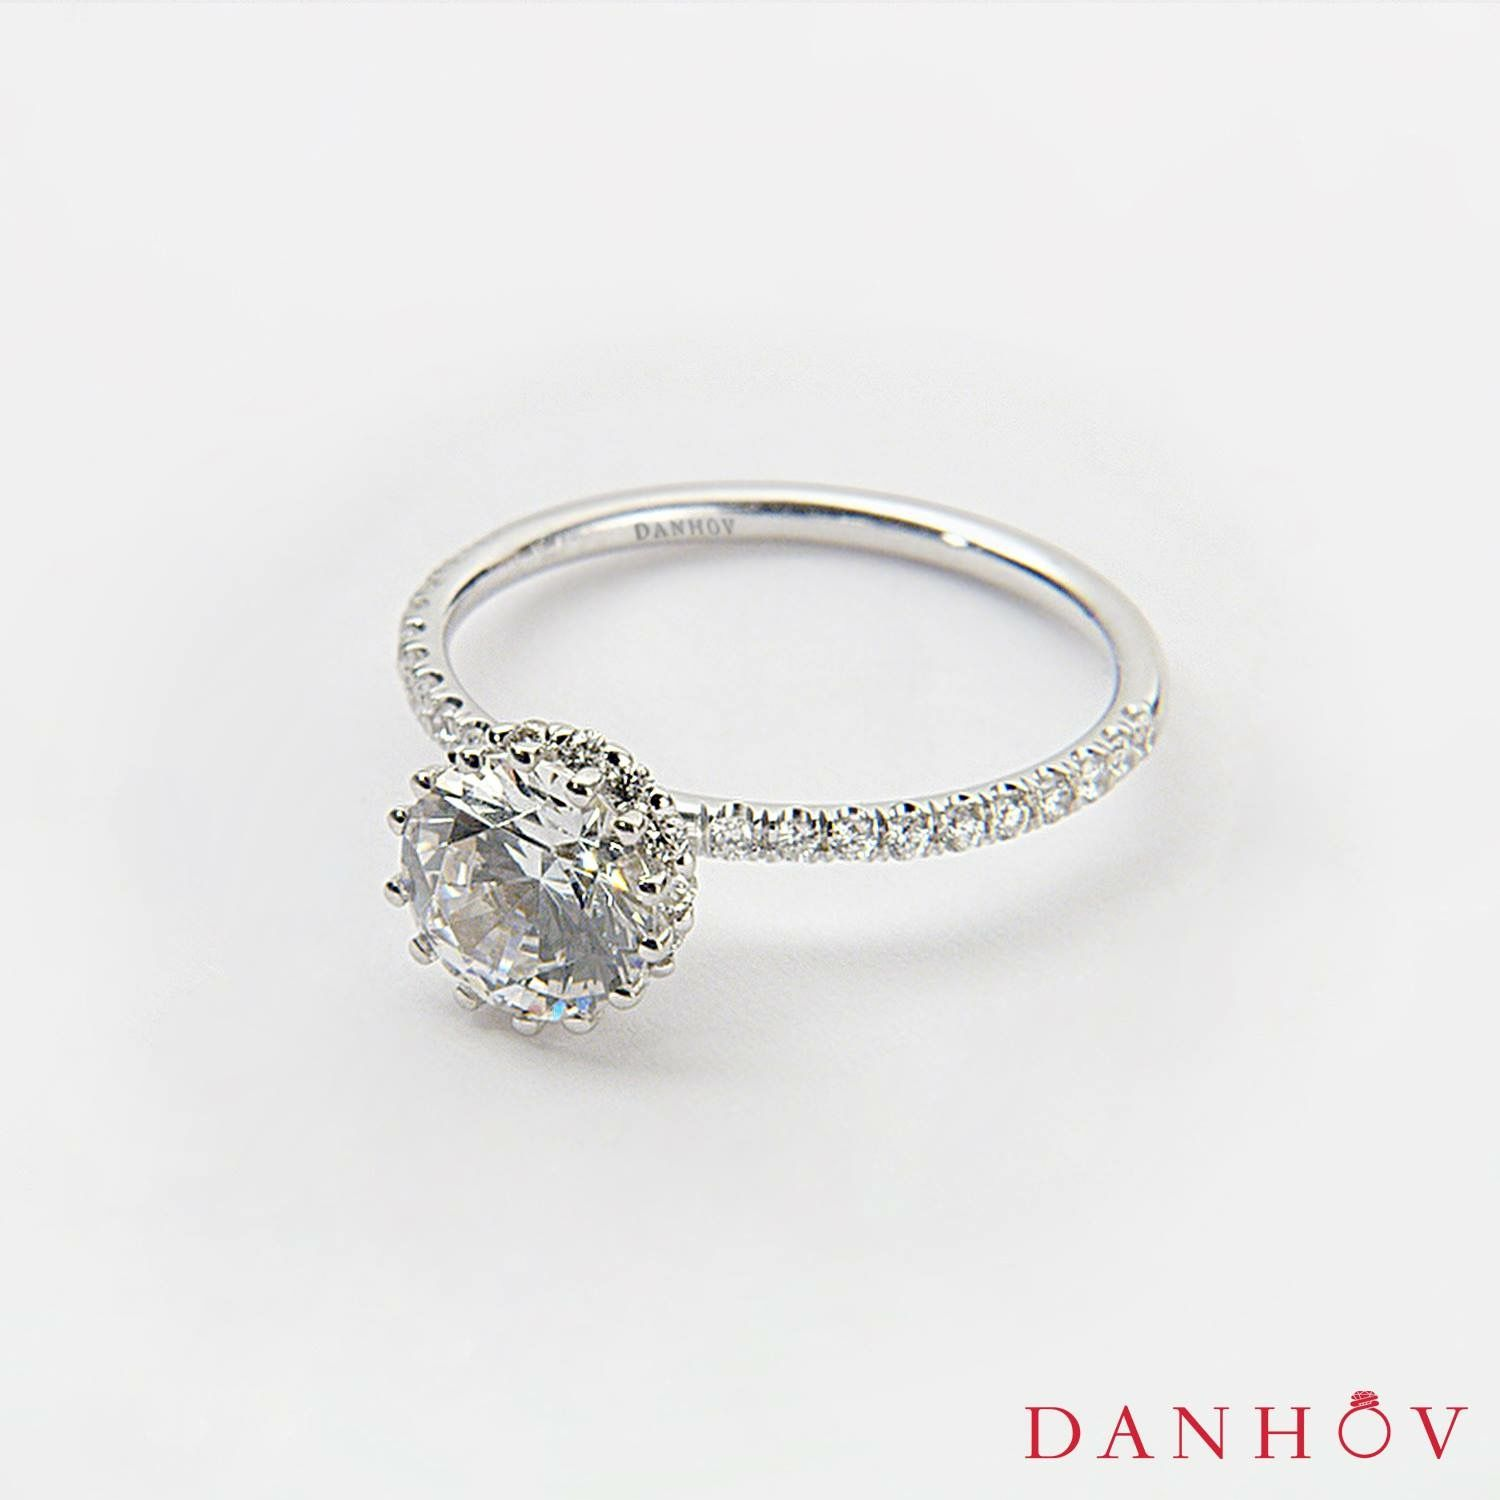 Couture Diamond Engagement Ring Style Ce502uh Danhov Diamond Engagementring Jewelry Desig Engagement Rings Unique Wedding Bands Luxury Jewelry Brands